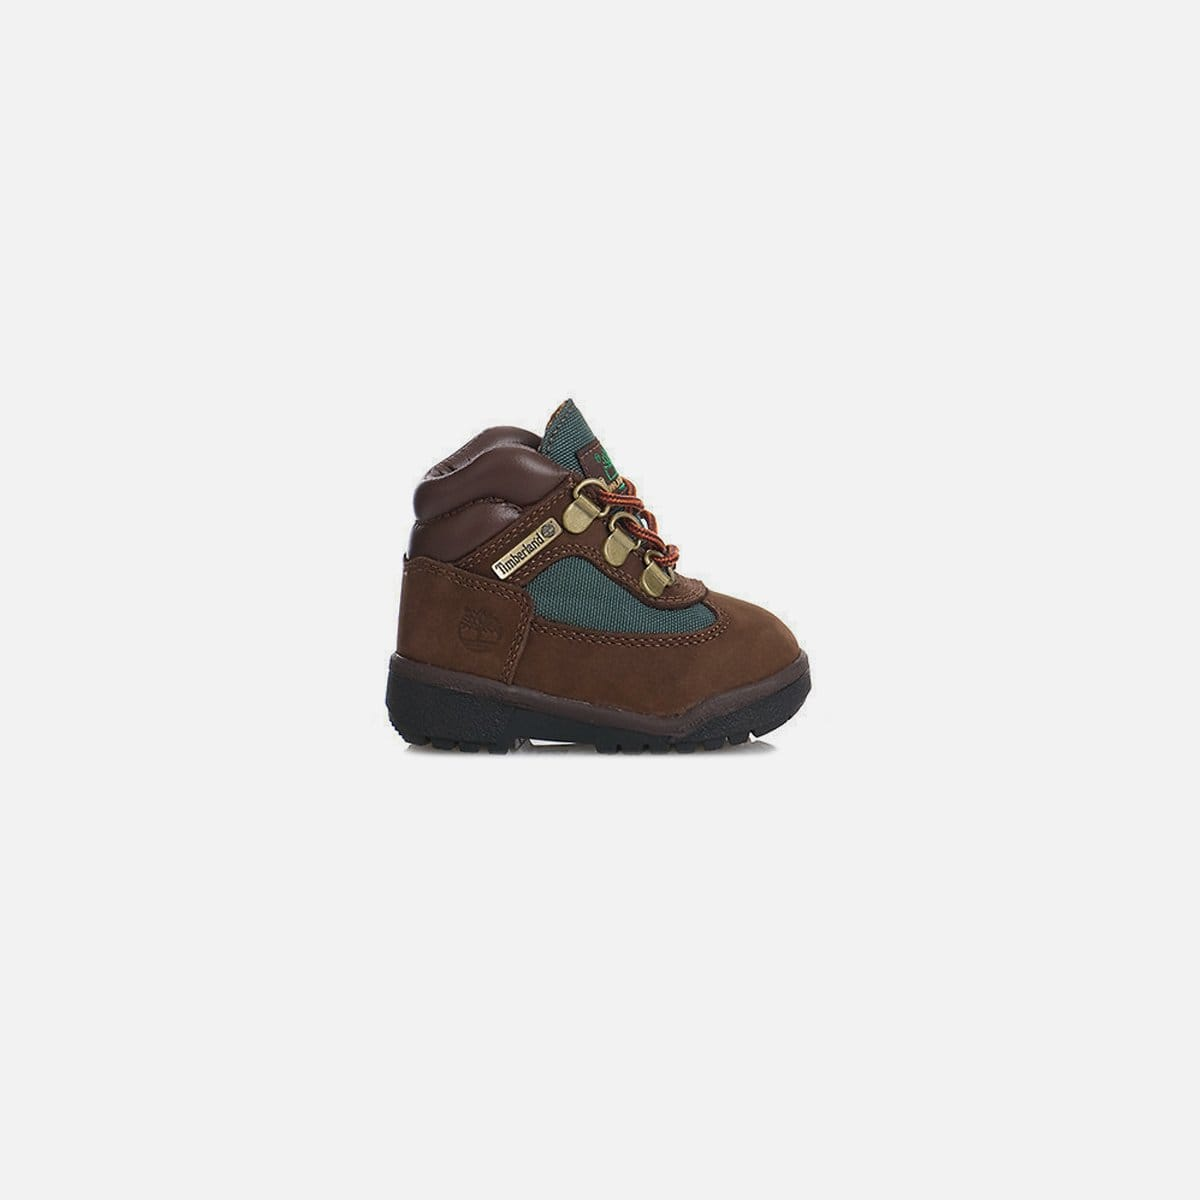 Timberland Field Boot Toddler (Brown/Forest Green)